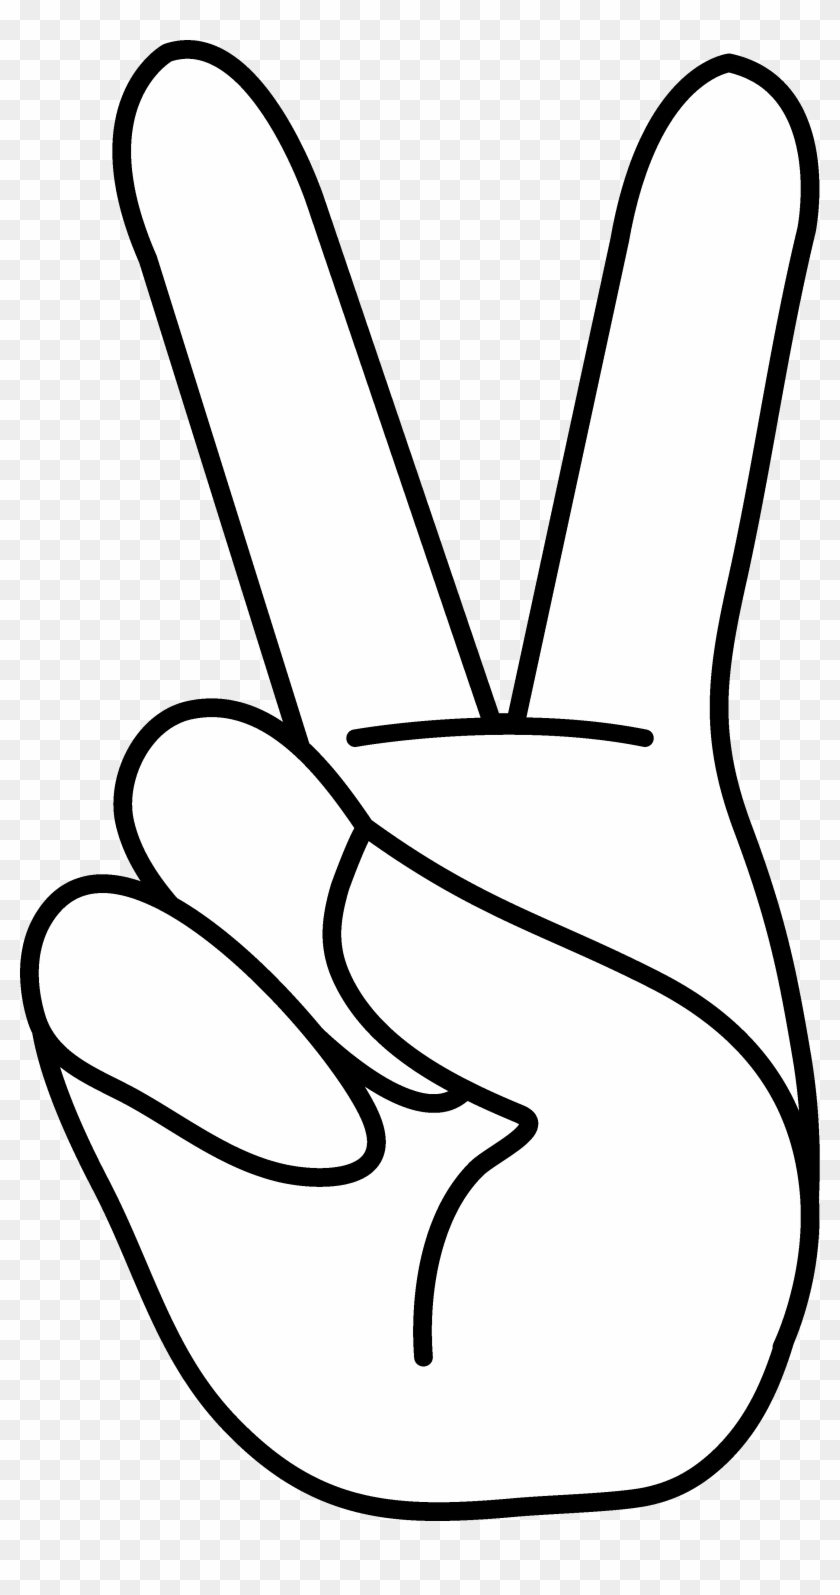 Peace Sign Peace Hand Sign Line Art Bodies 2 And Clip - Peace Sign Hand Clip Art #106846